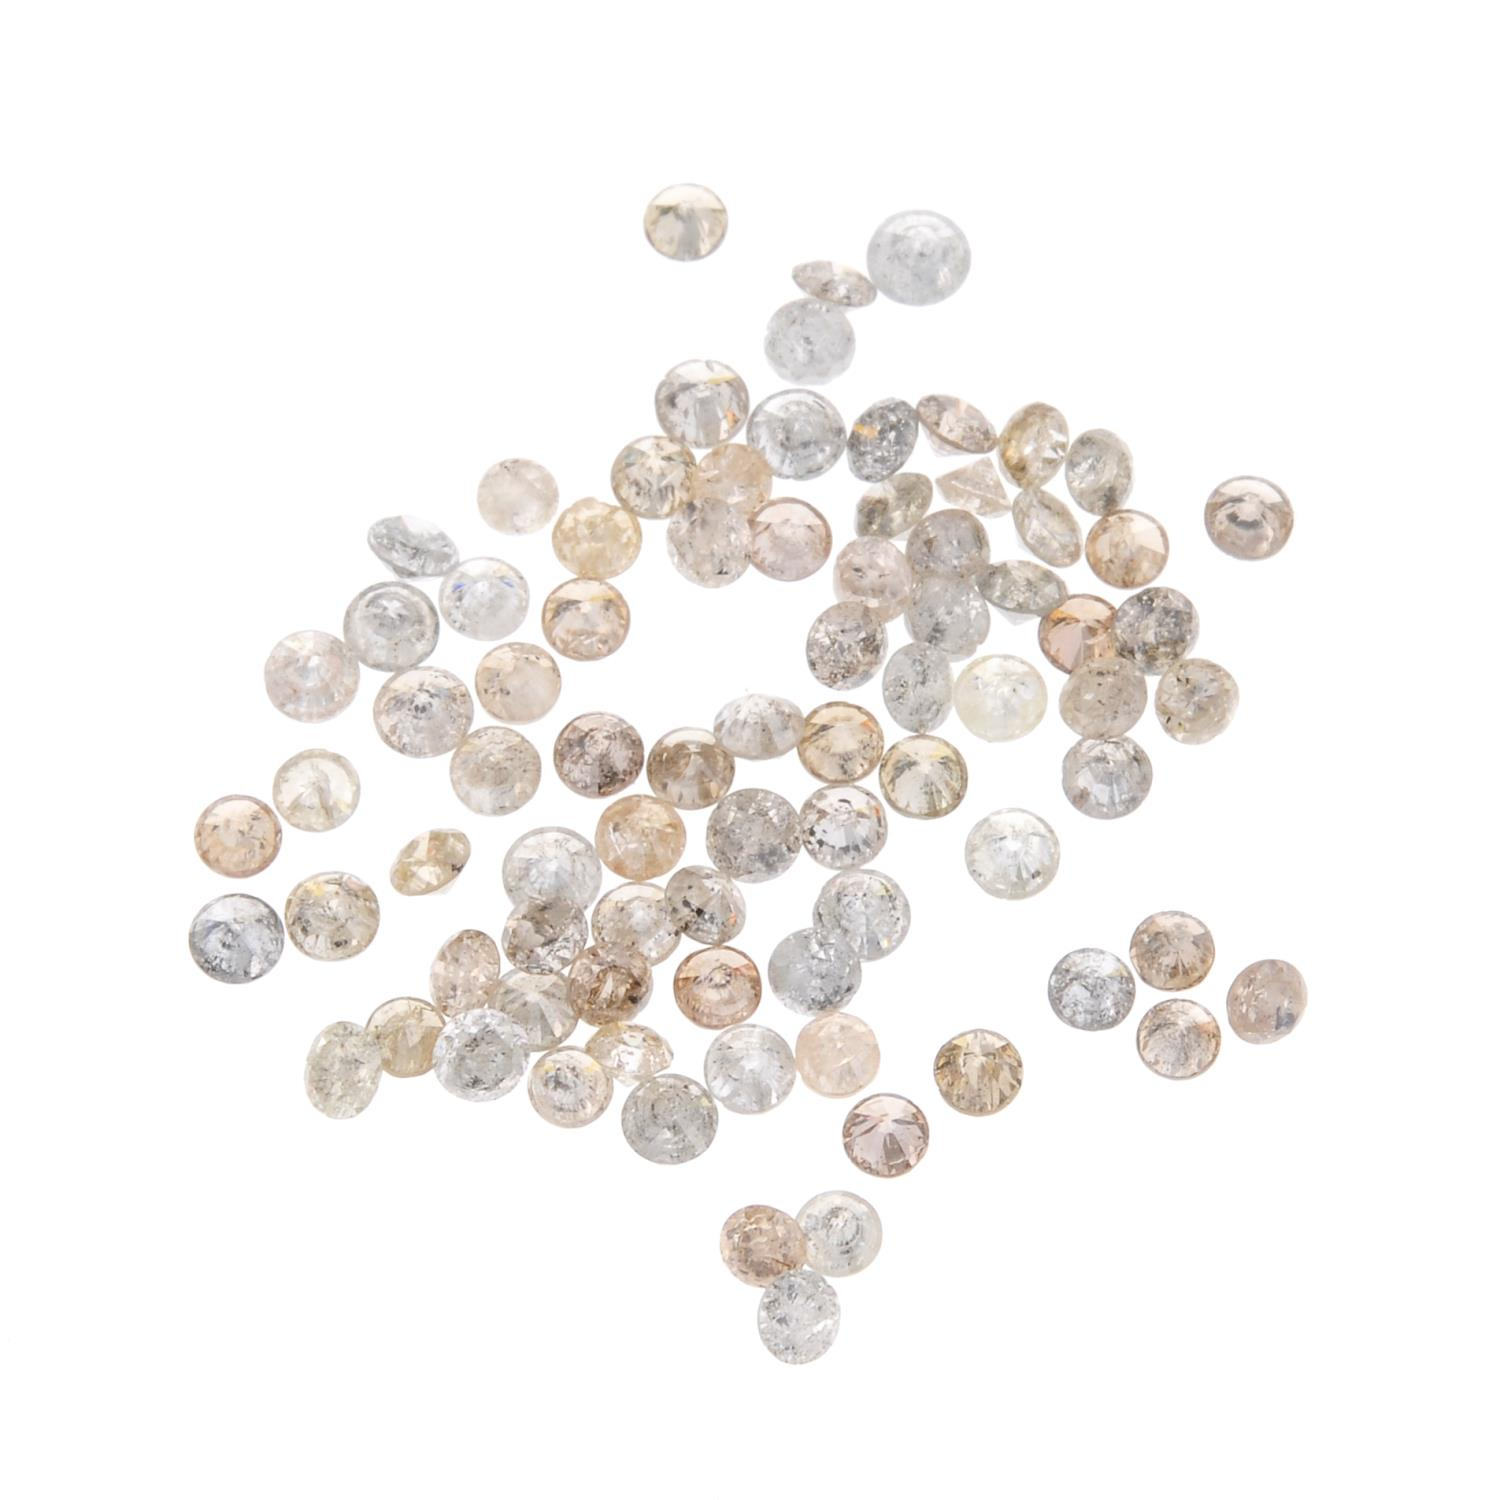 A small selection of round brilliant-cut melee diamonds and 'brown' melee diamonds.